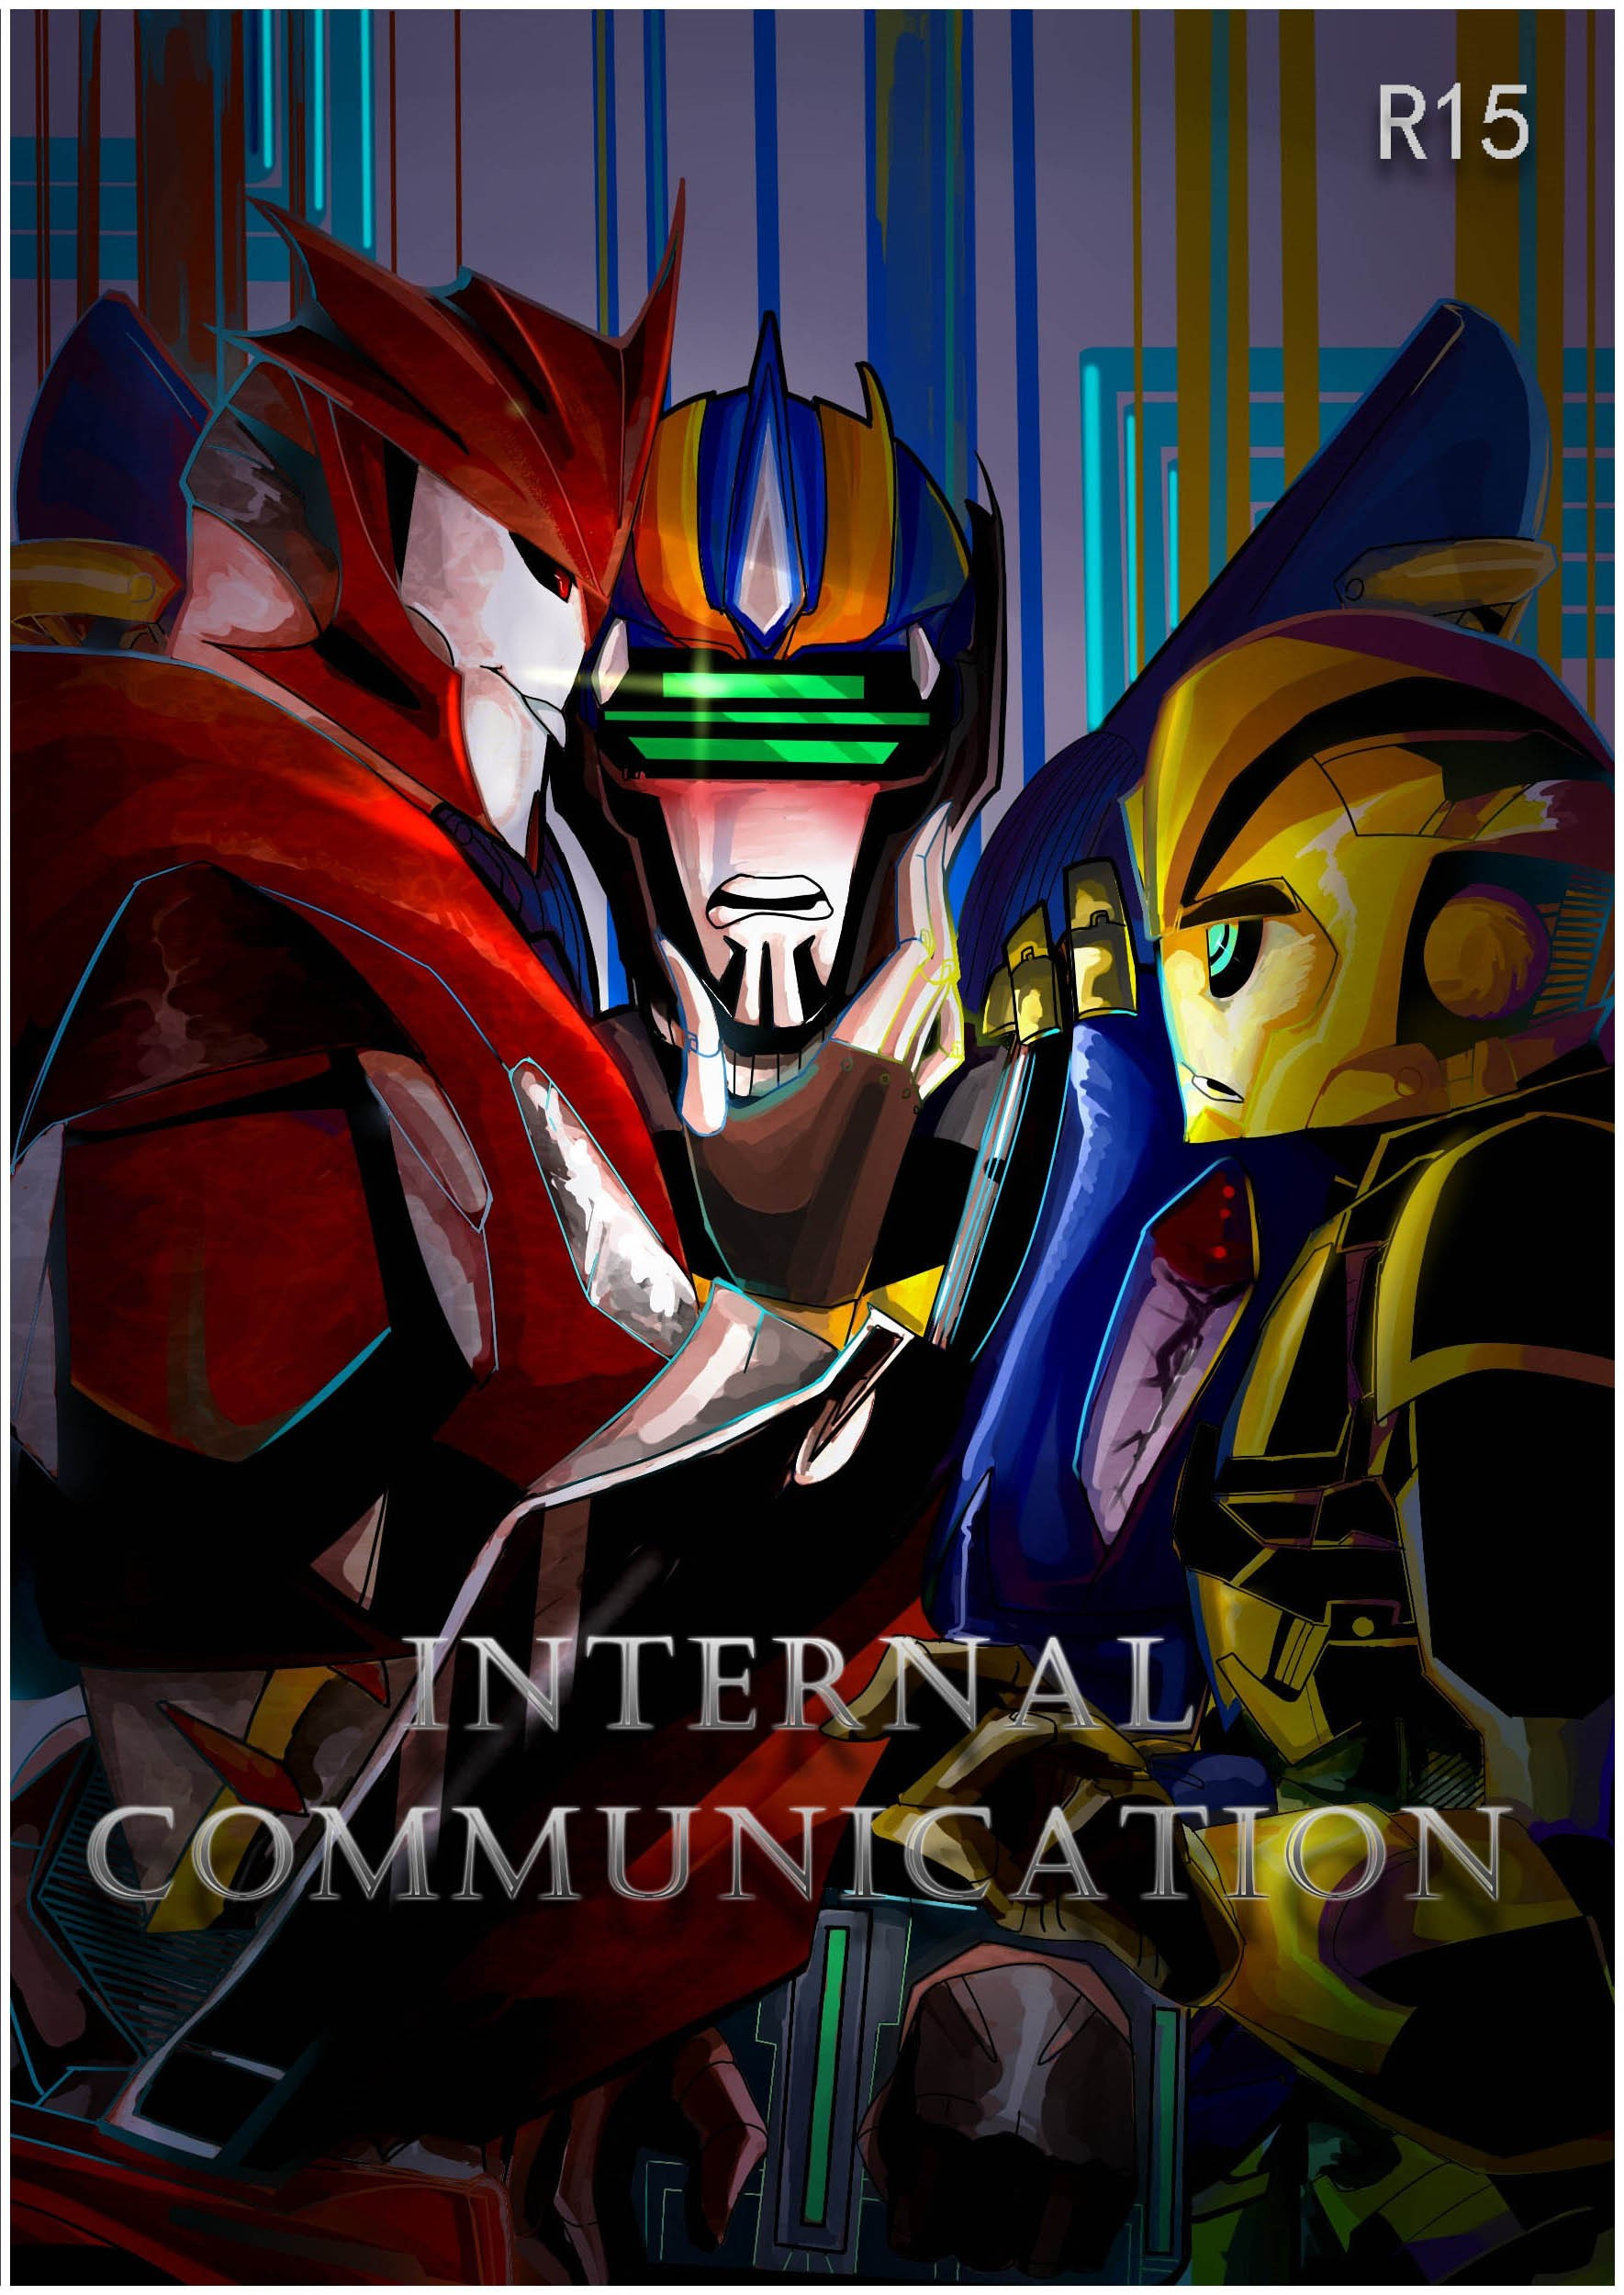 Interal Communication/内部交流